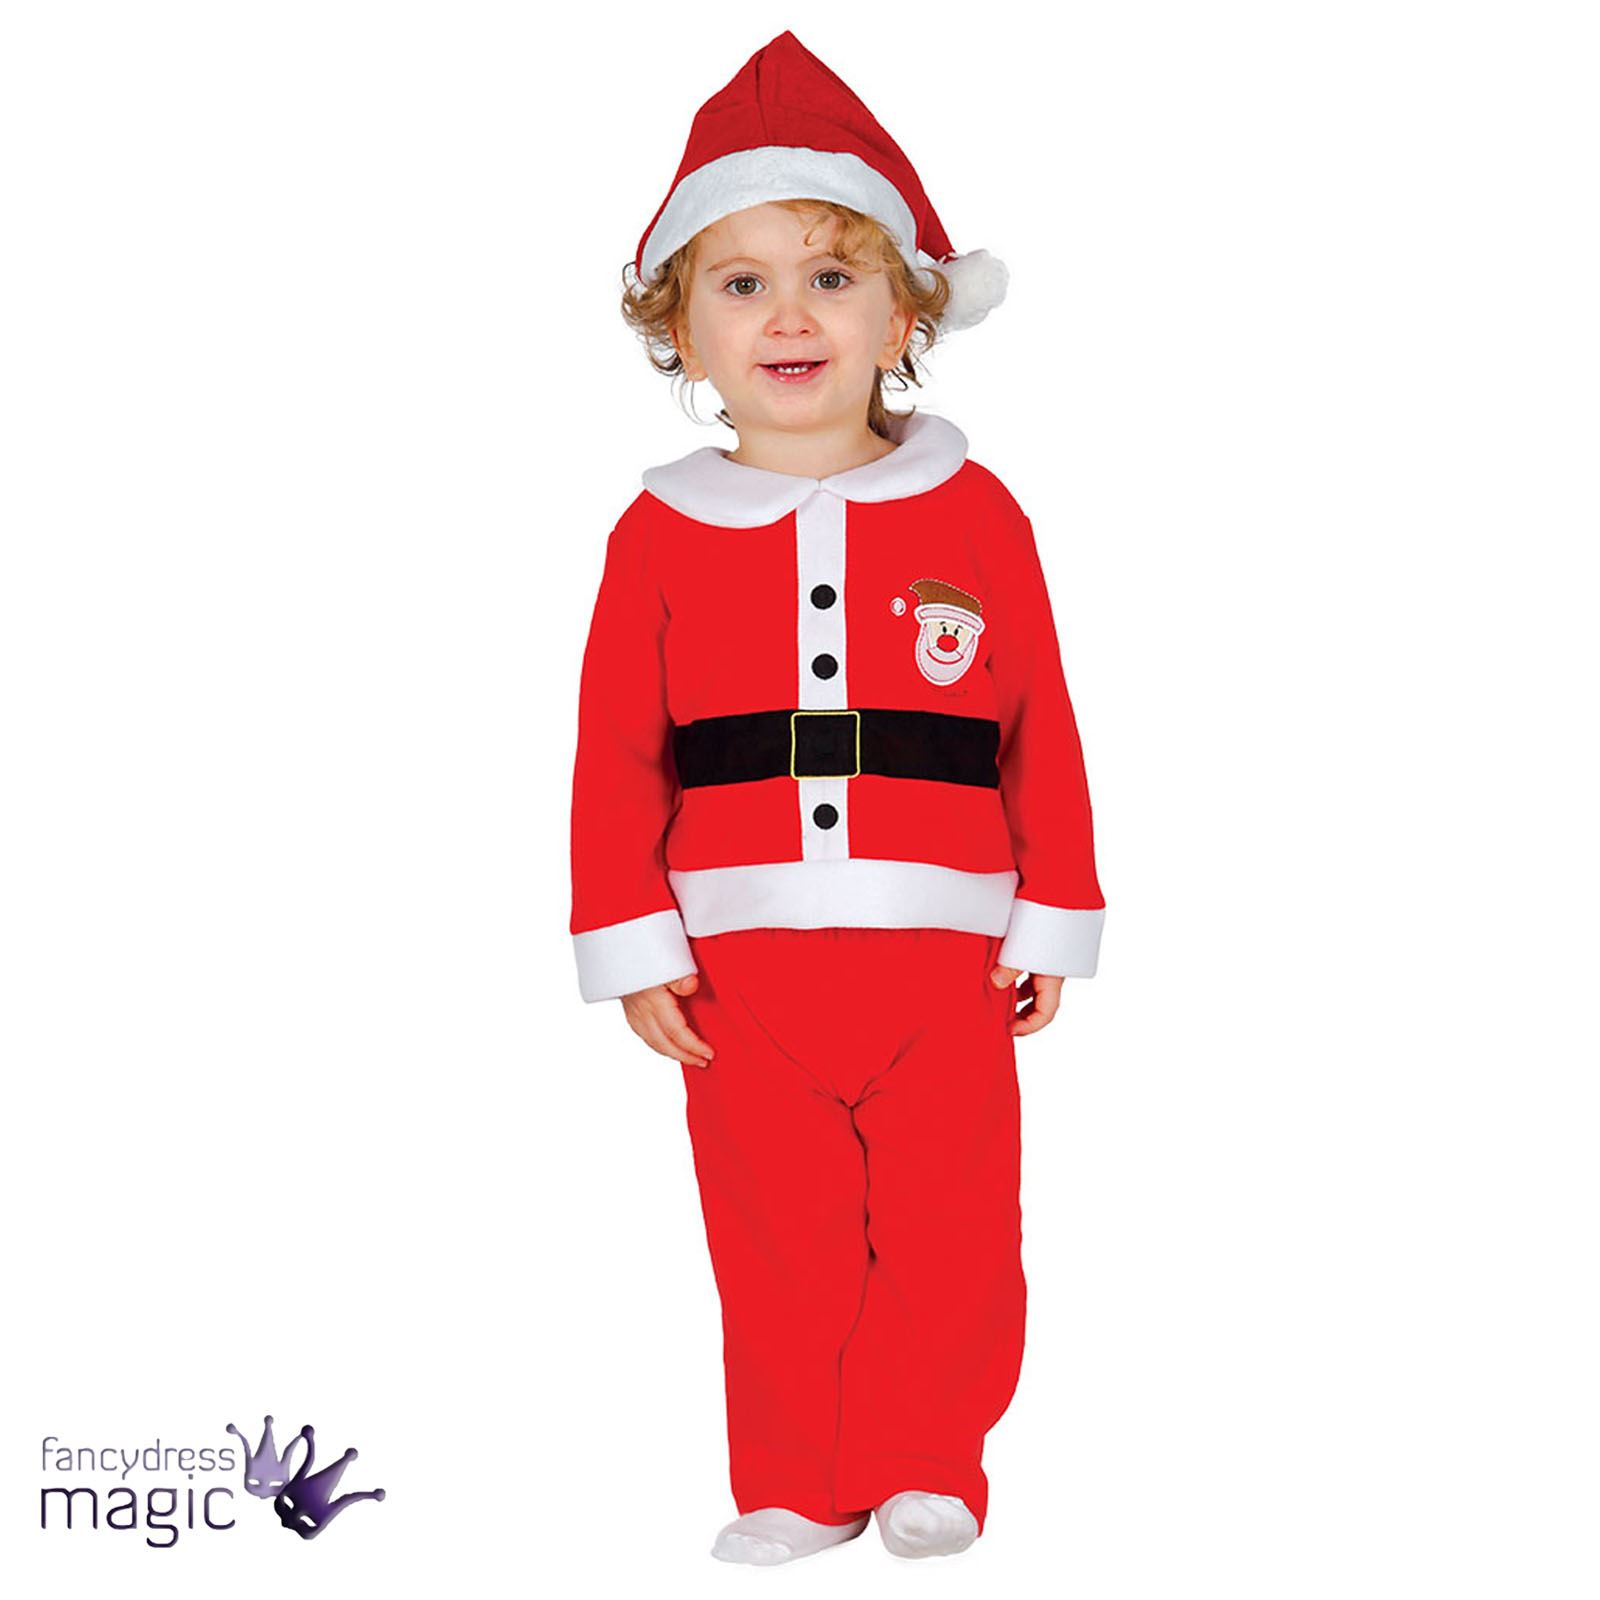 dbf0b7c93 Baby Toddler Boys Santa Claus Christmas Xmas Fancy Dress Costume Hat  Festive Set